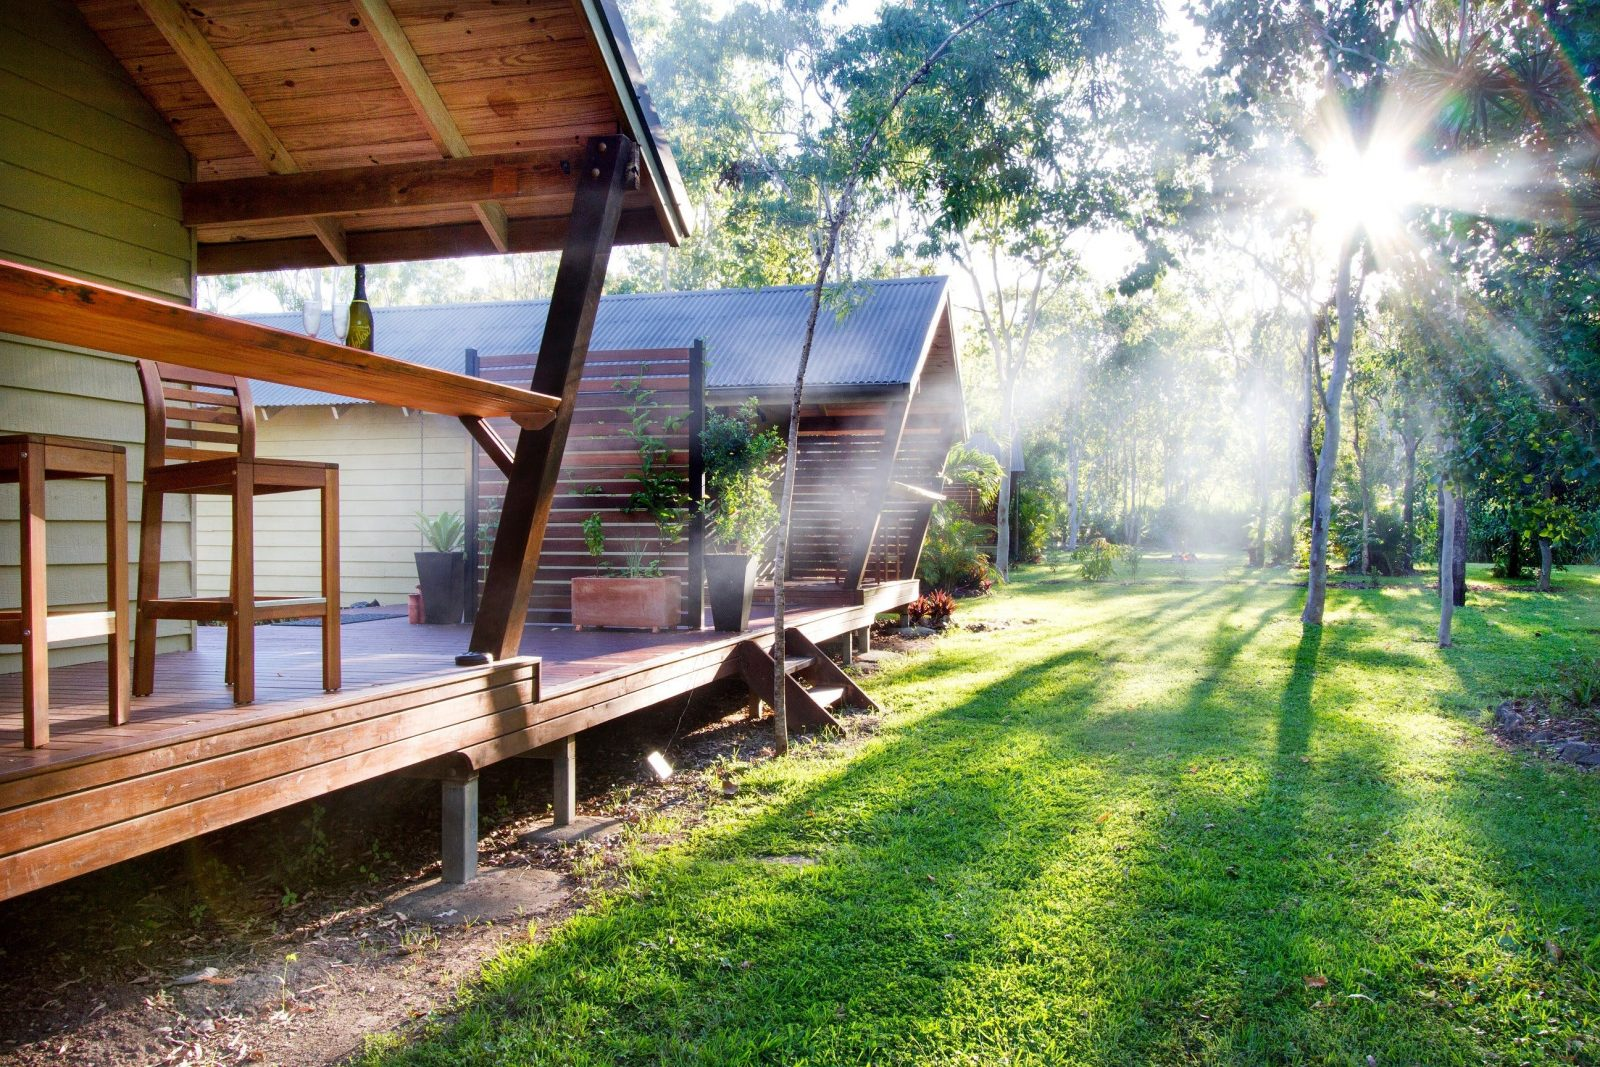 outside - in front of cabins